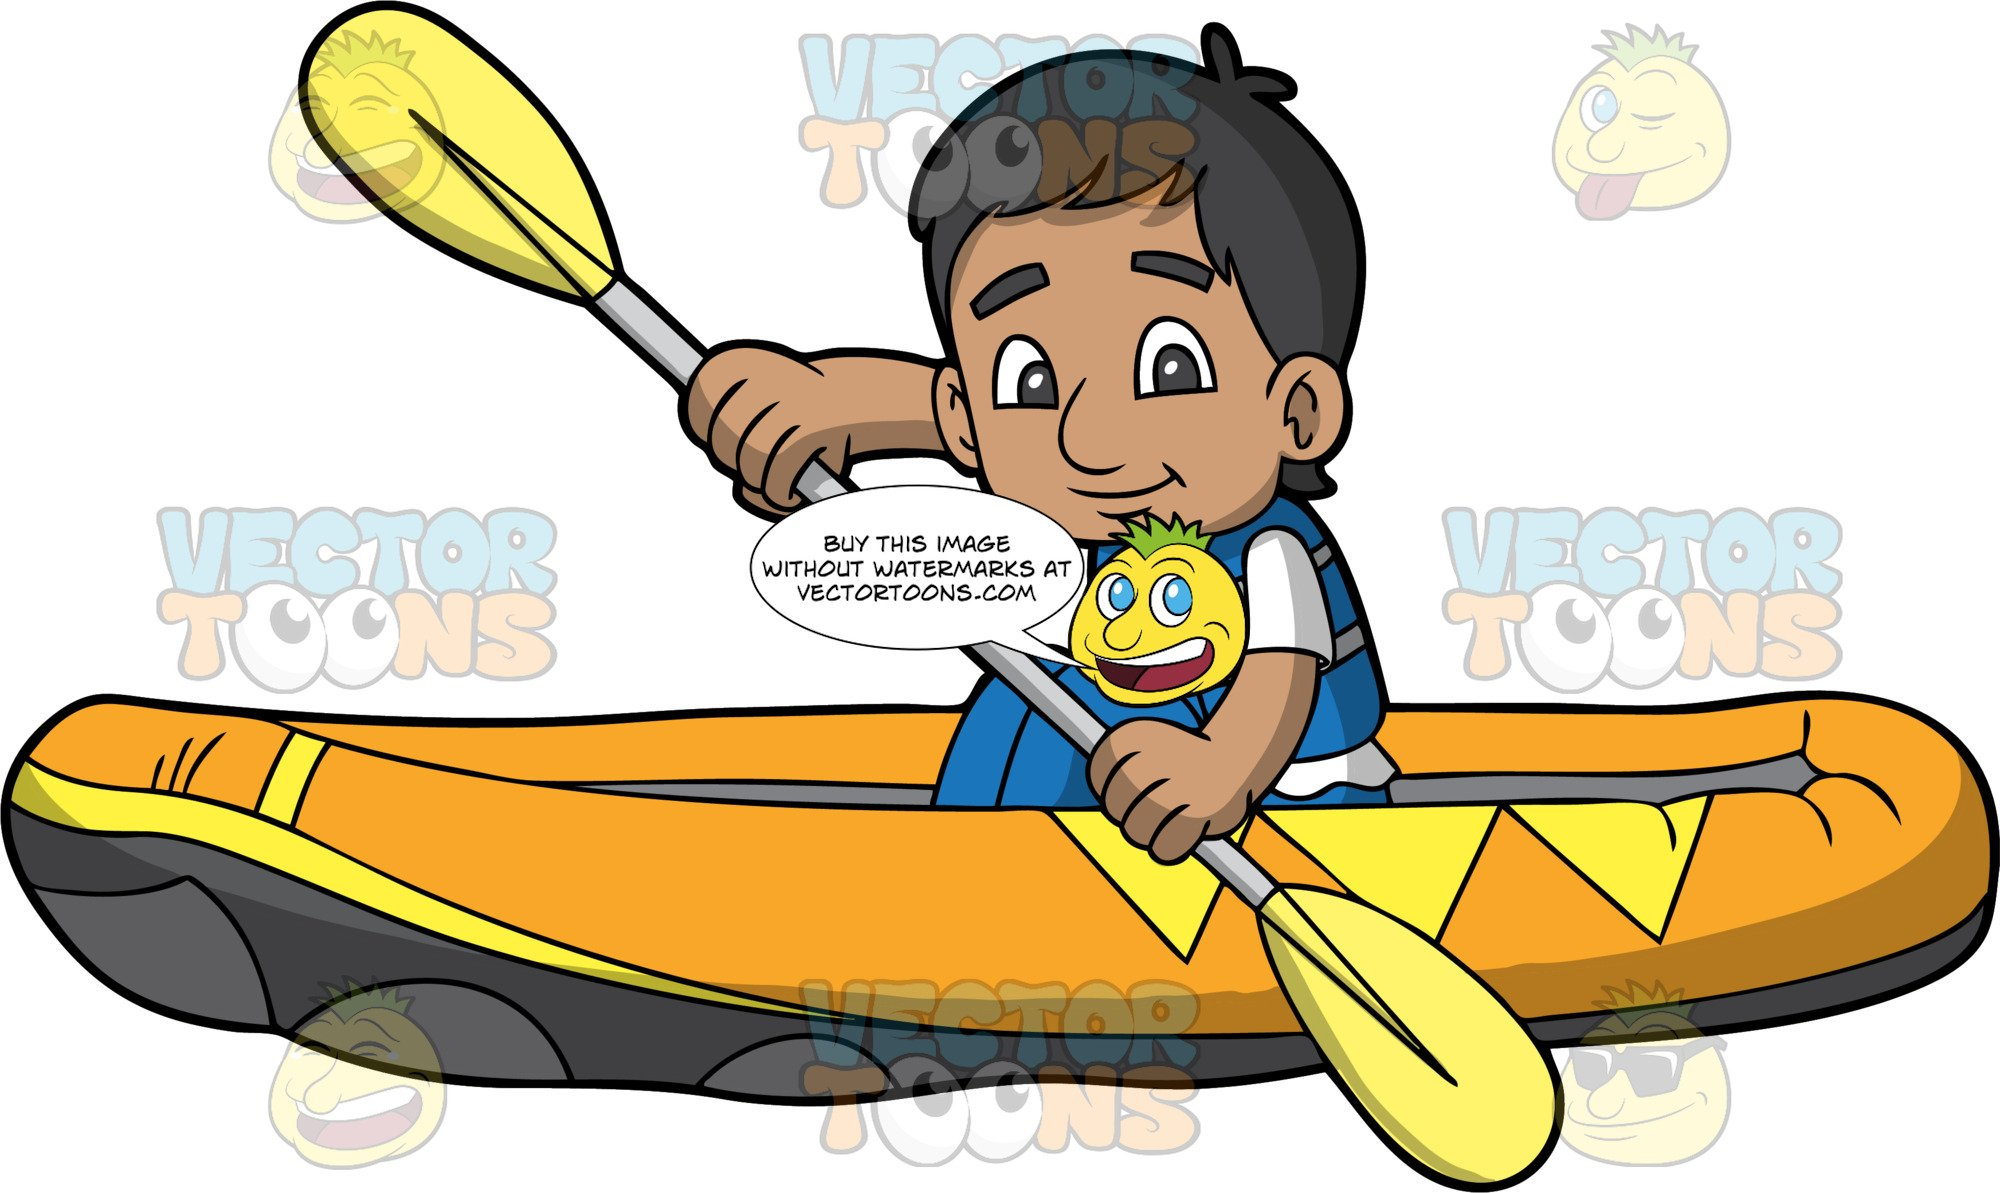 An Indian Boy Paddling His Raft Through Some Calm Water.